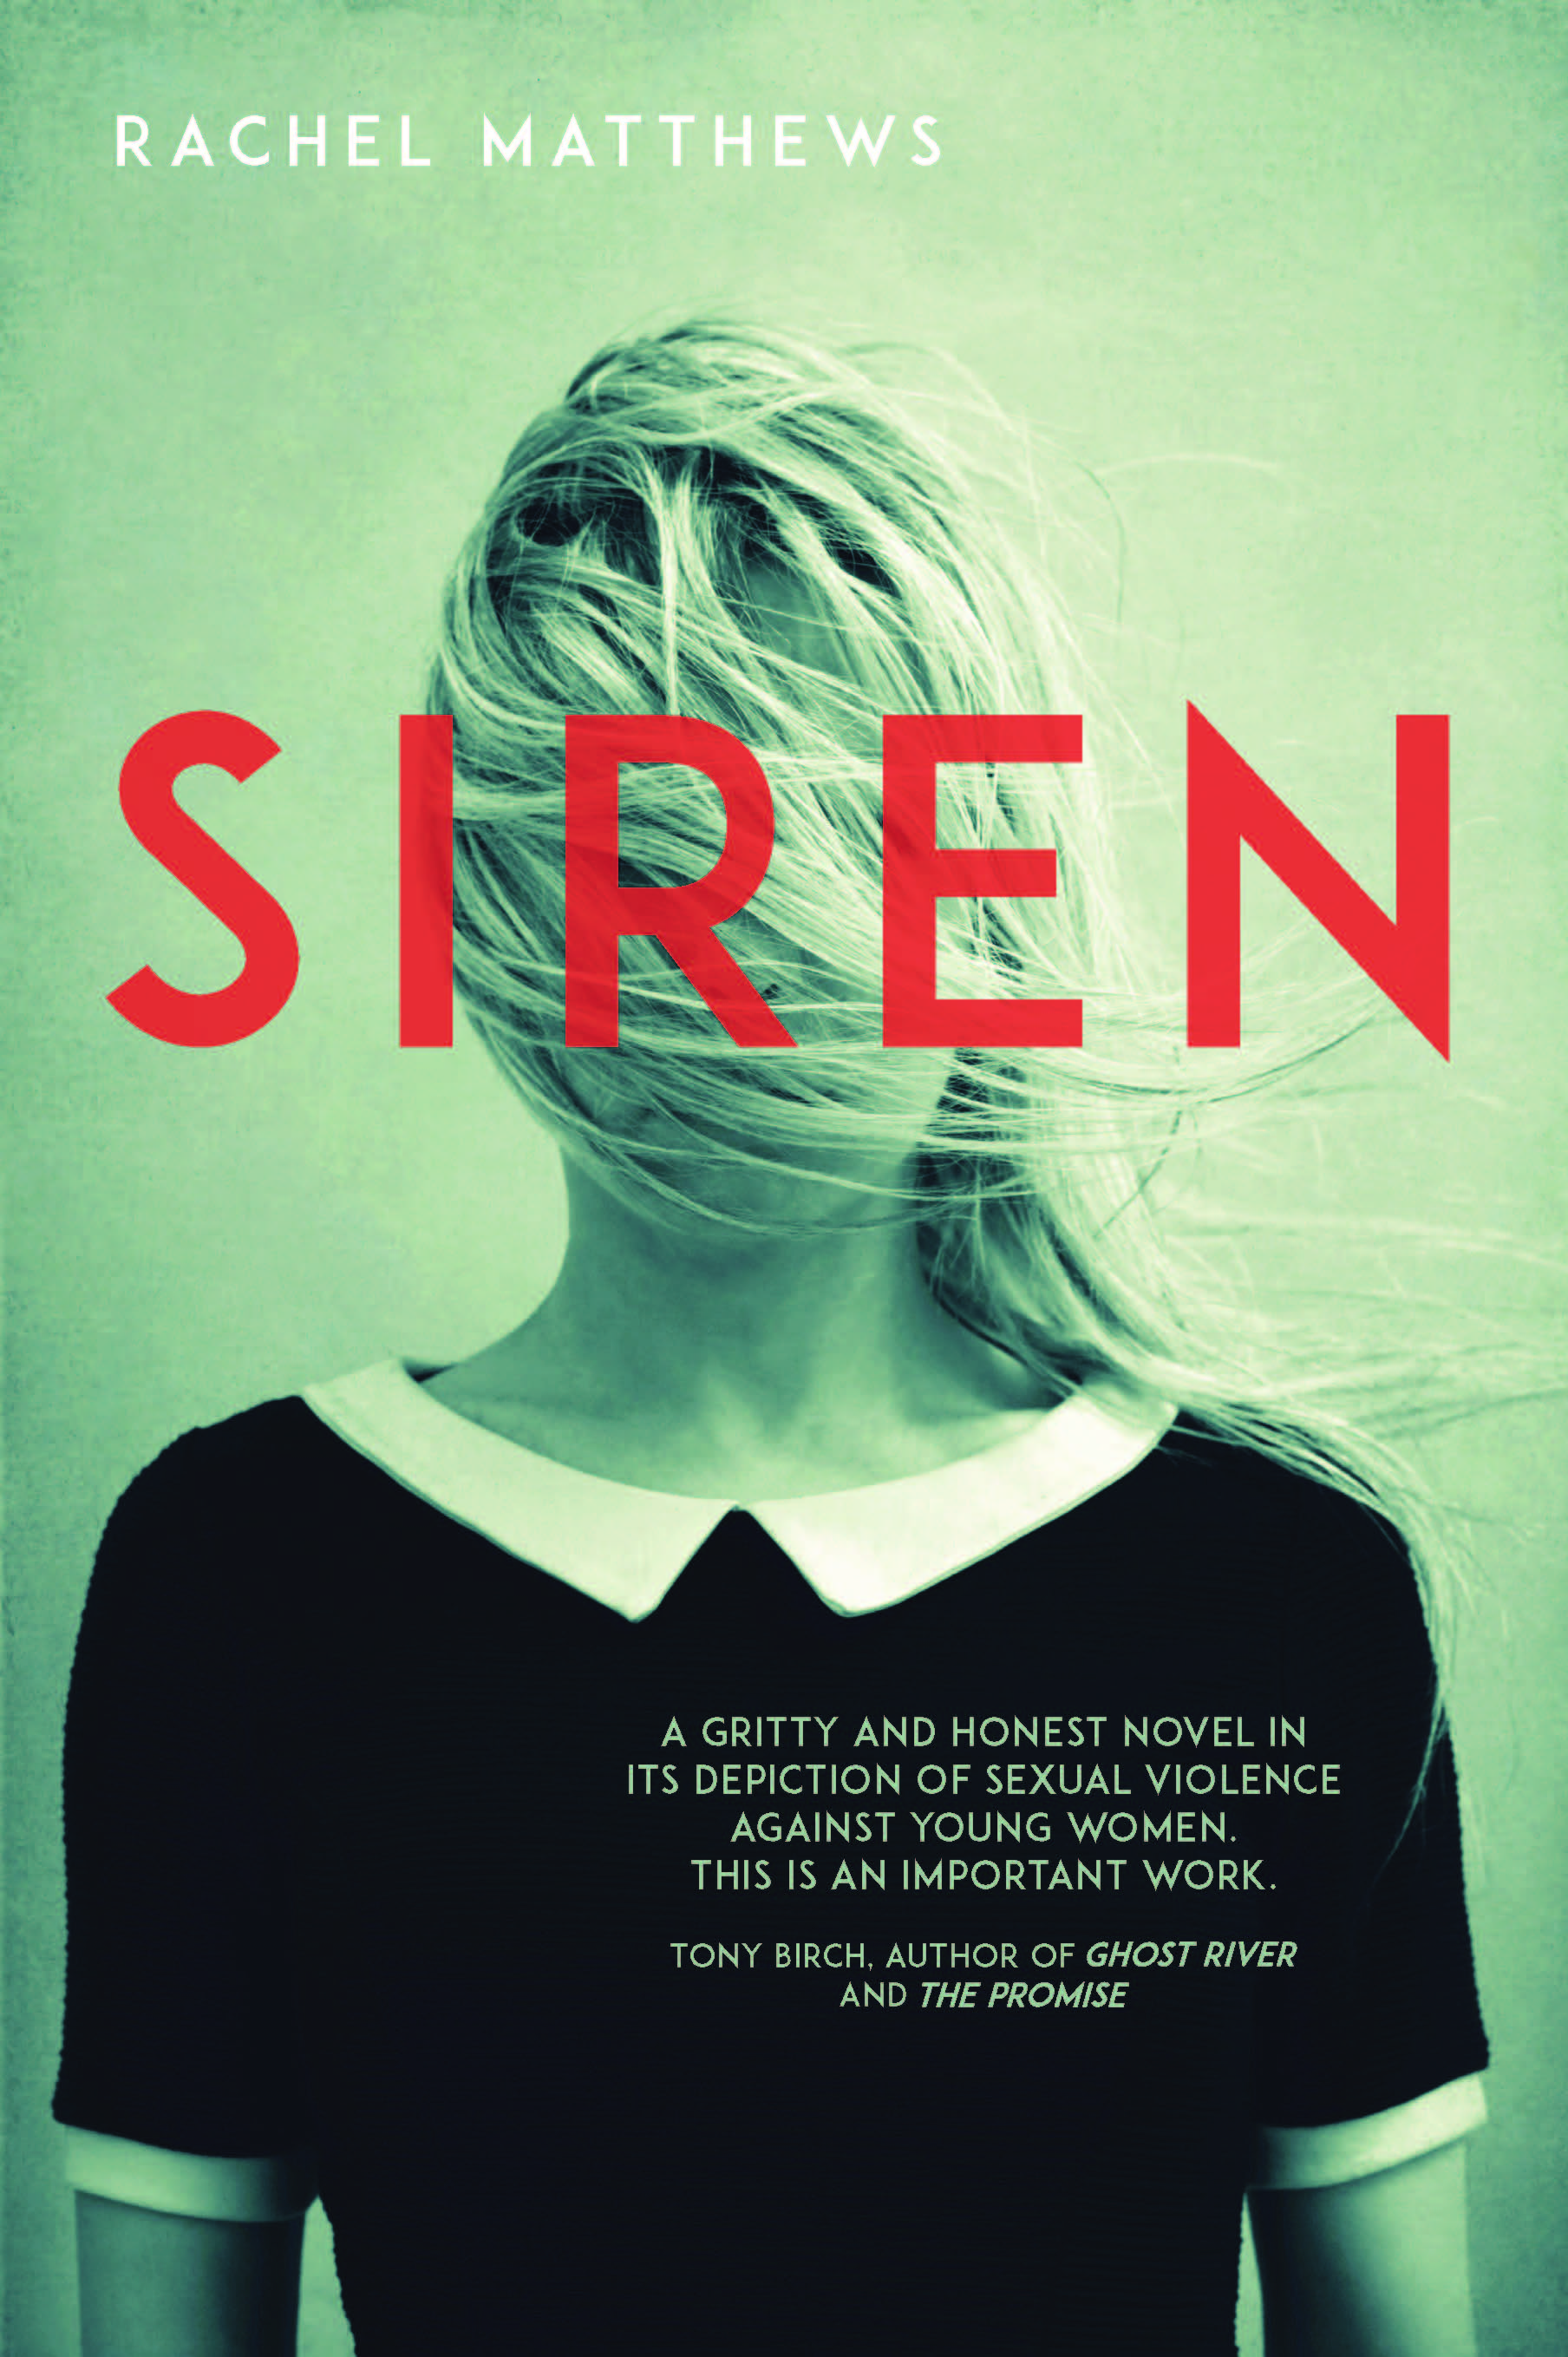 Launch of Siren by Rachel Matthews